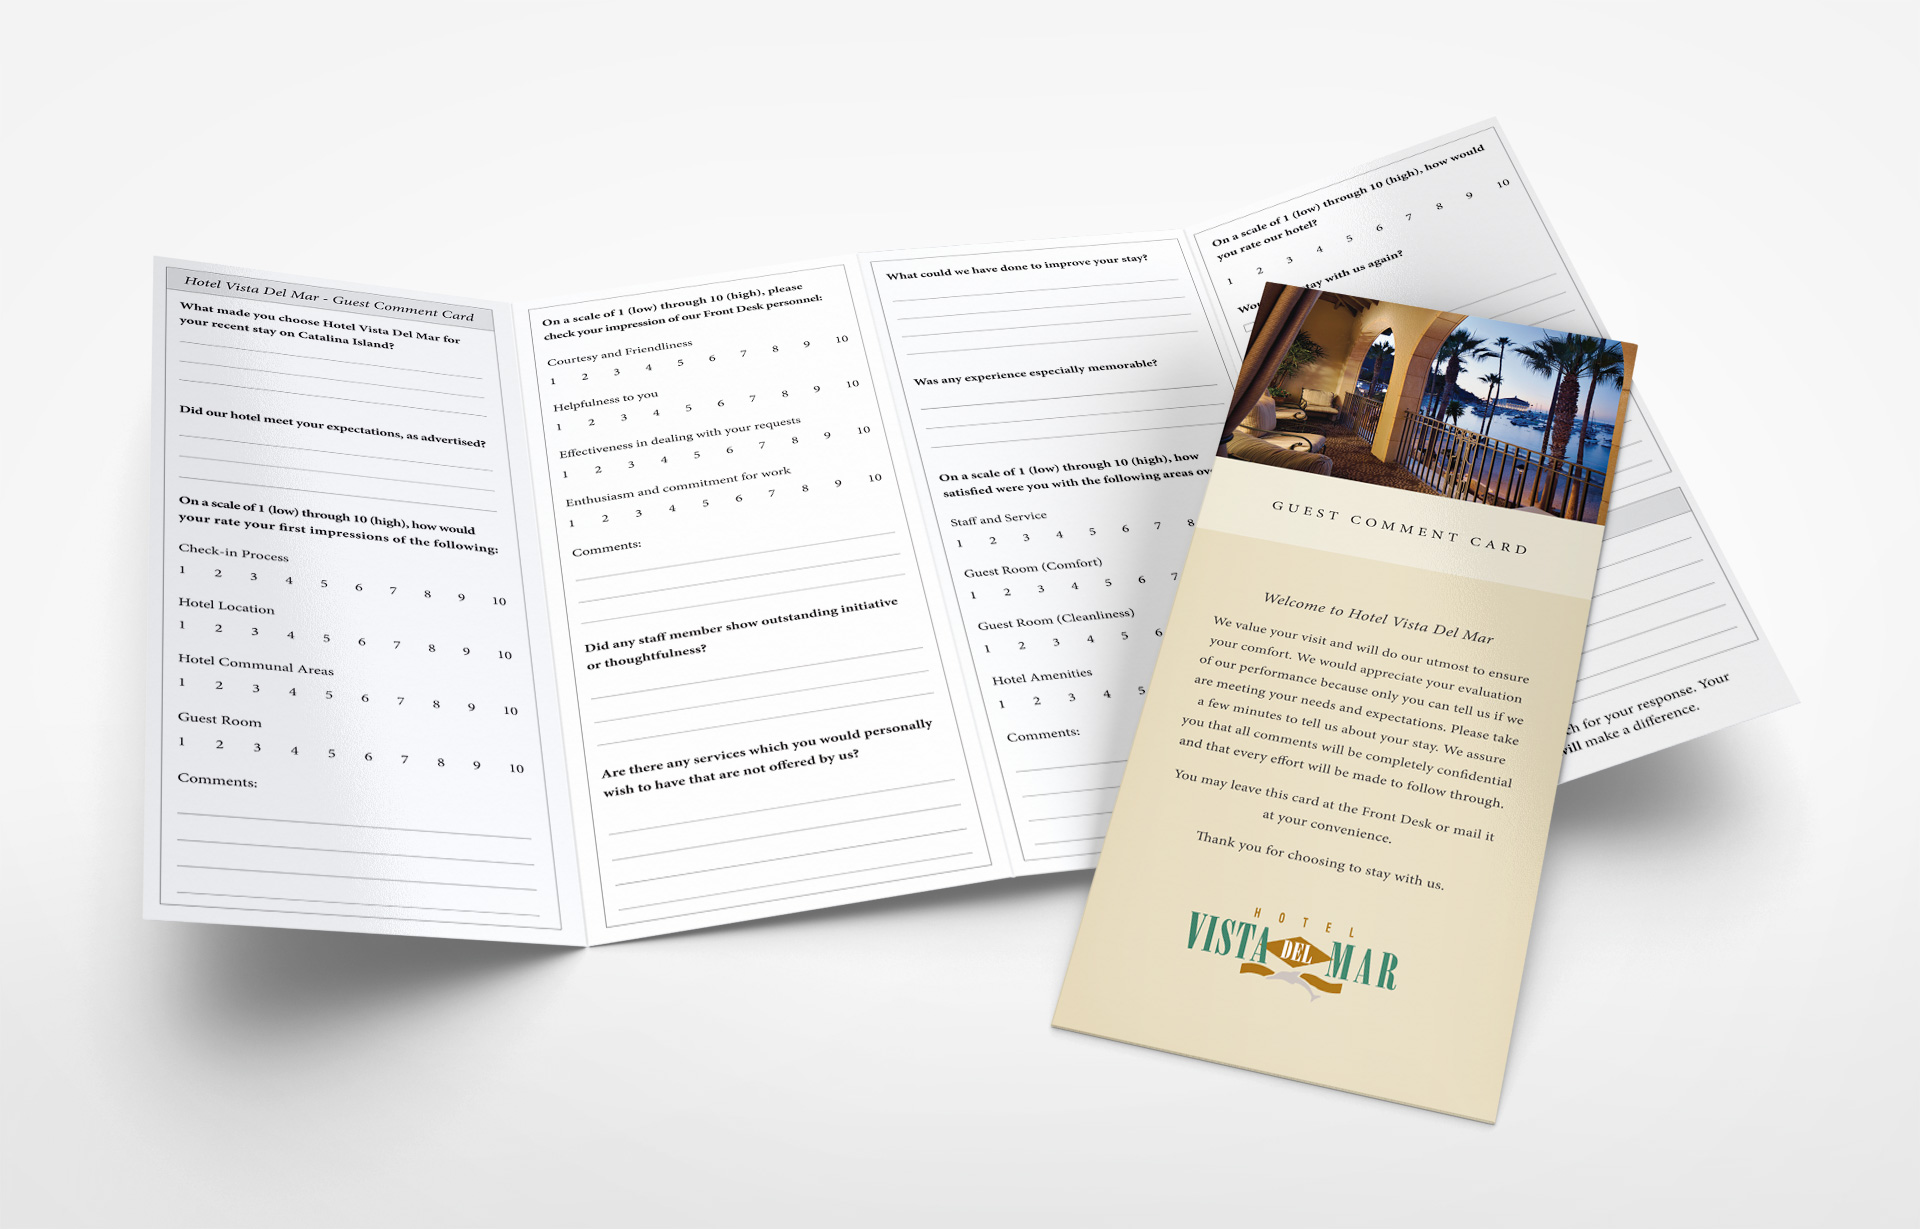 Hotel Guest Questionnaire